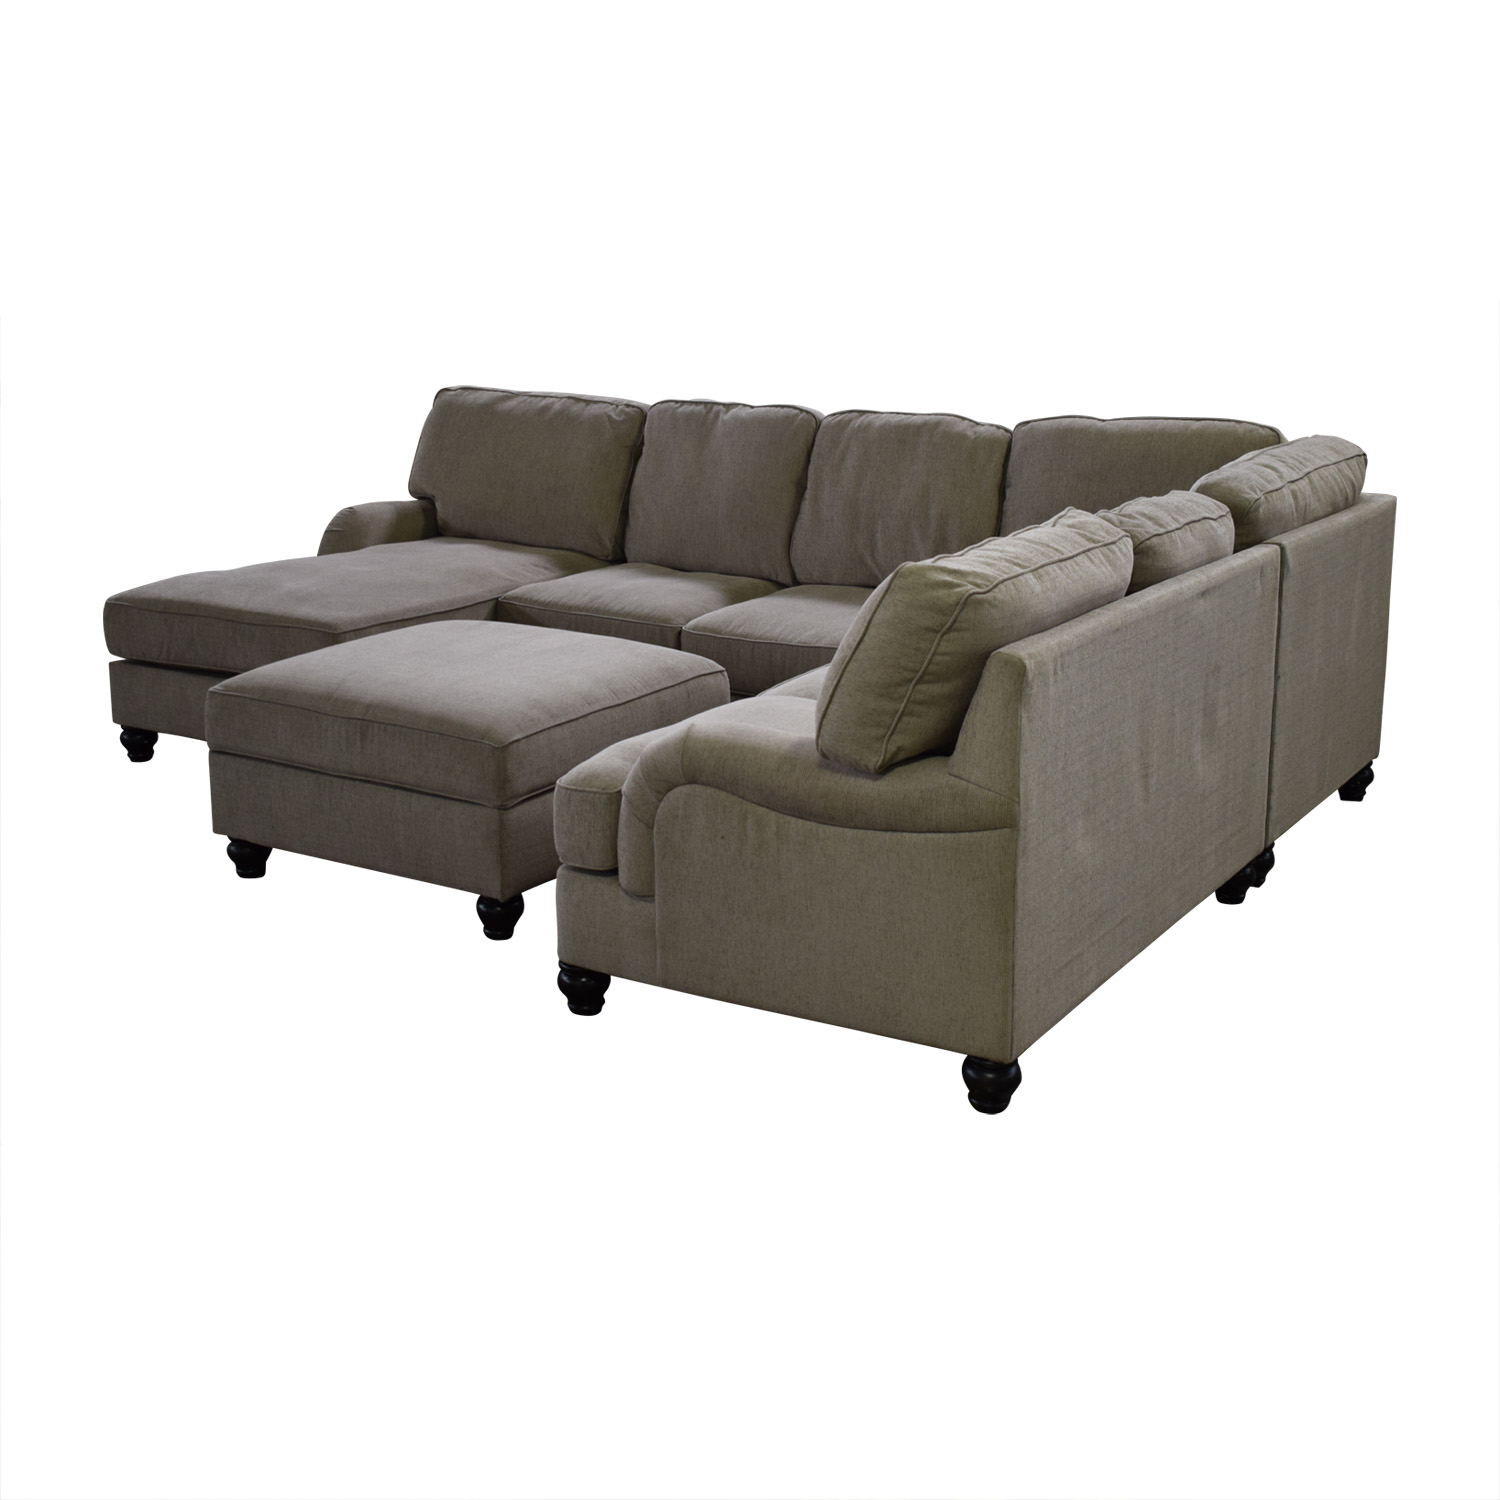 buy Ashley Furniture Ashley Furniture Chaise Sectional Sofa online